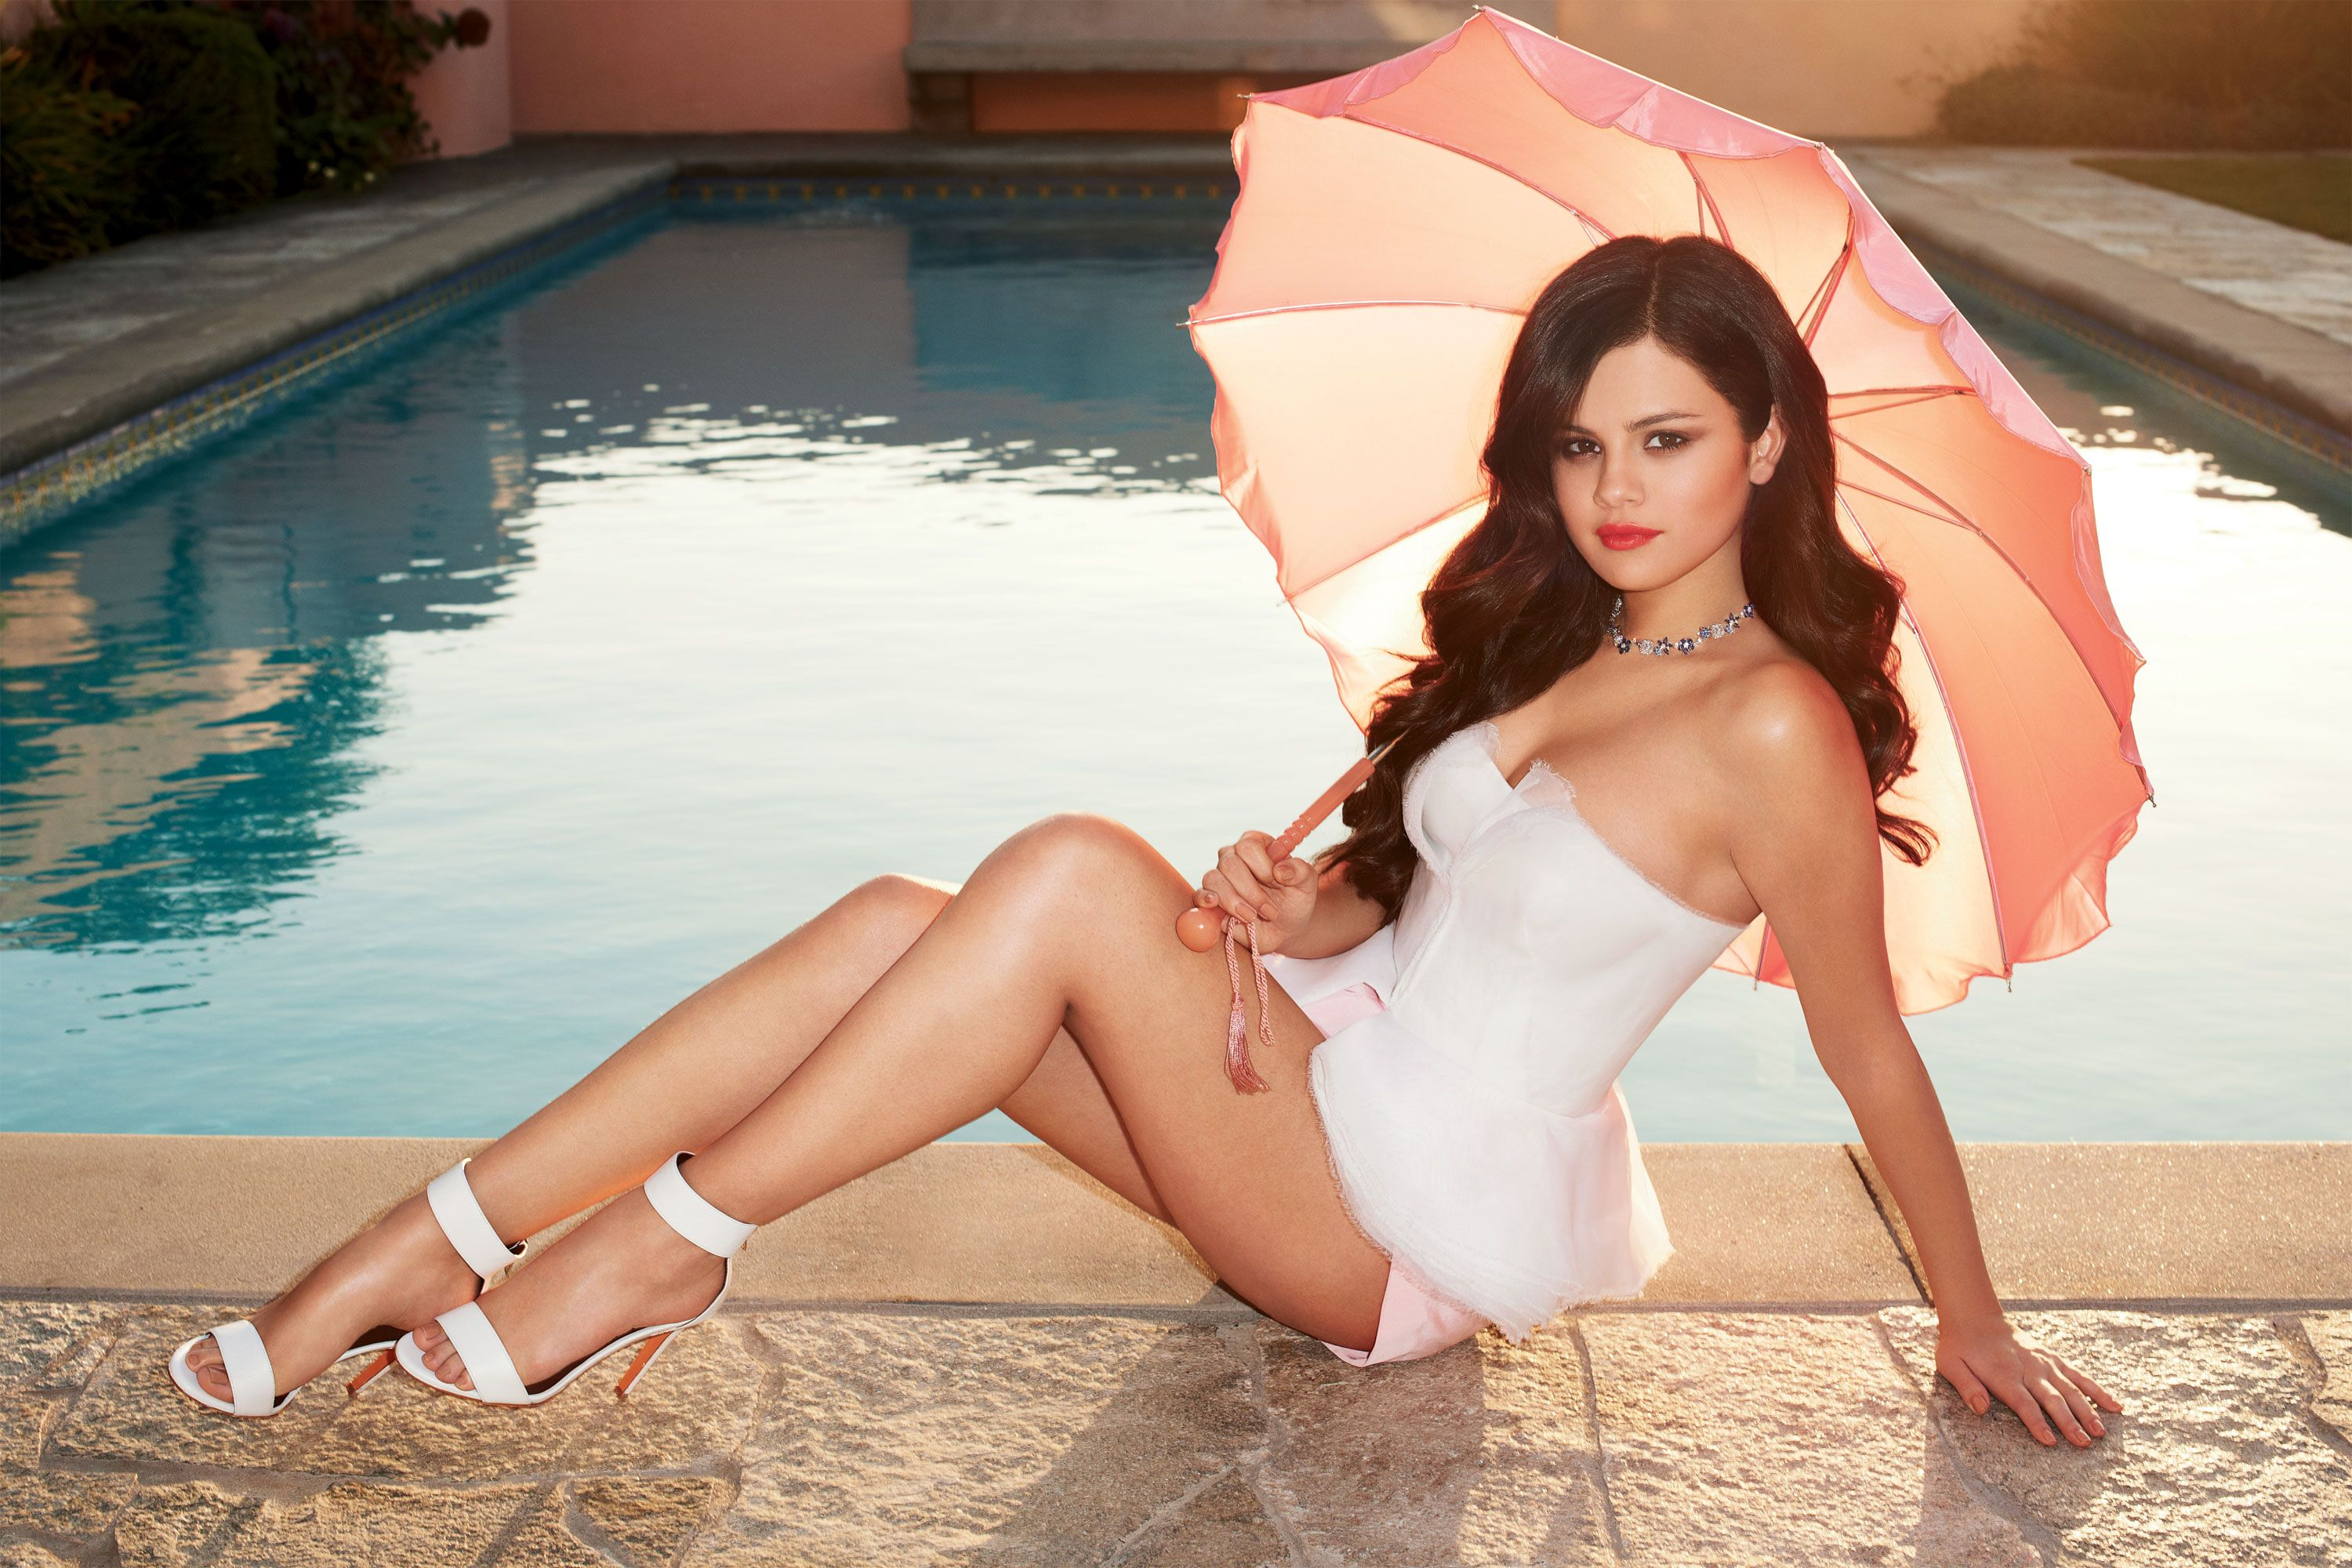 42 of the best breast moments in bazaar selena gomez fashion 42 of the best breast moments in bazaar celebrity wallpapersmovies boxcomedy moviesselena gomez voltagebd Image collections